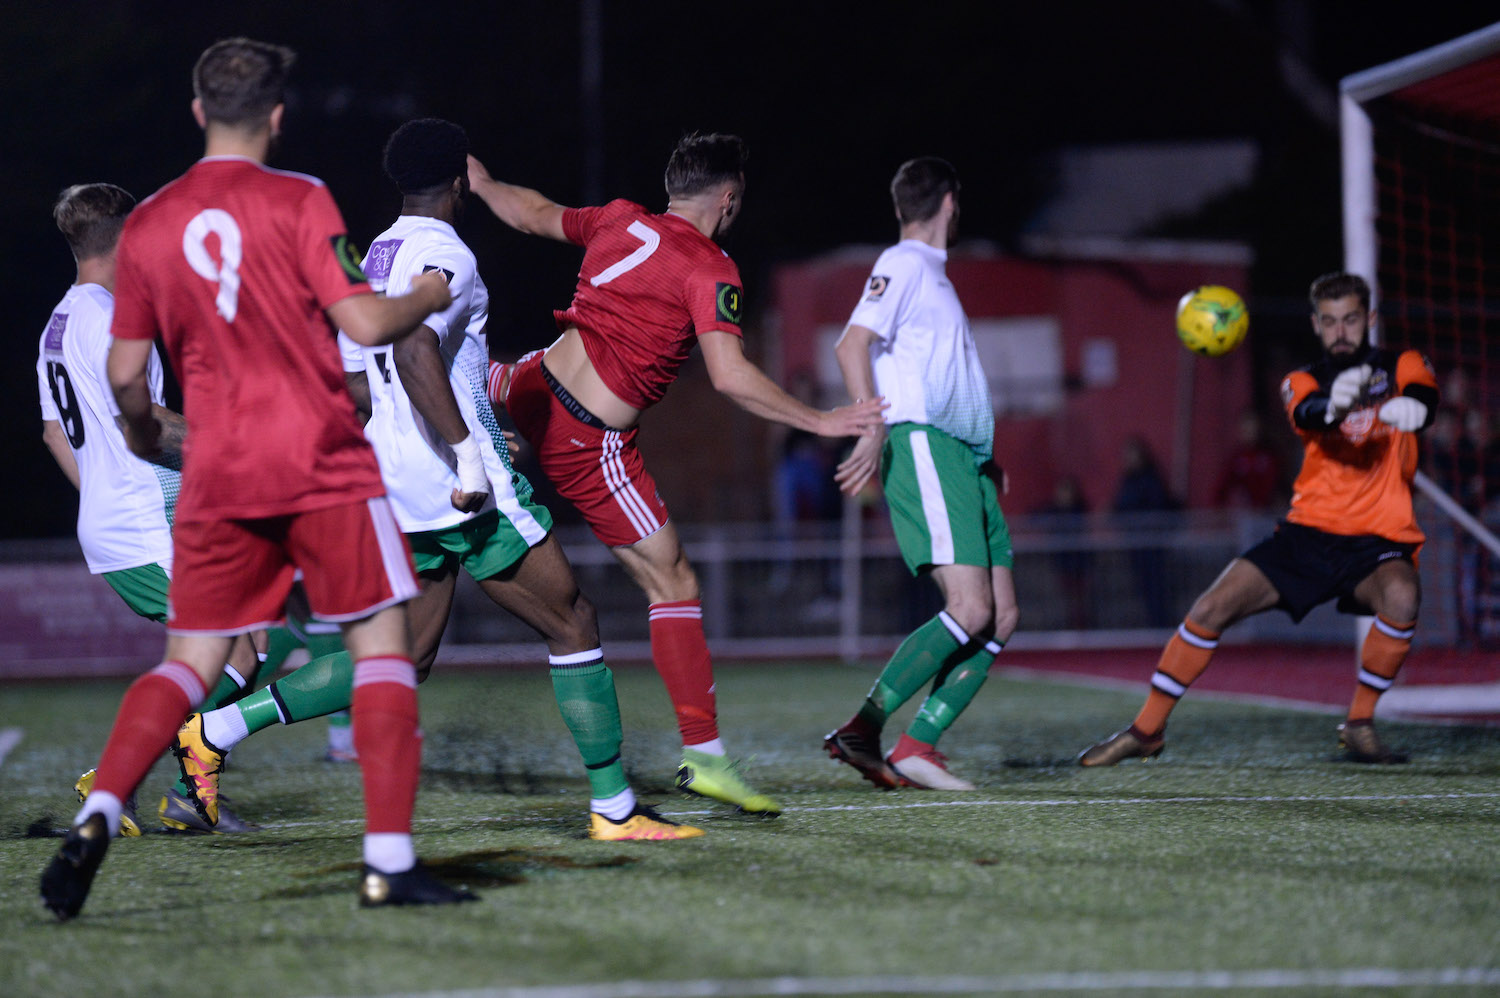 Read the full article - HIGHLIGHTS | 19/20: St. Albans City [H] – FA Cup